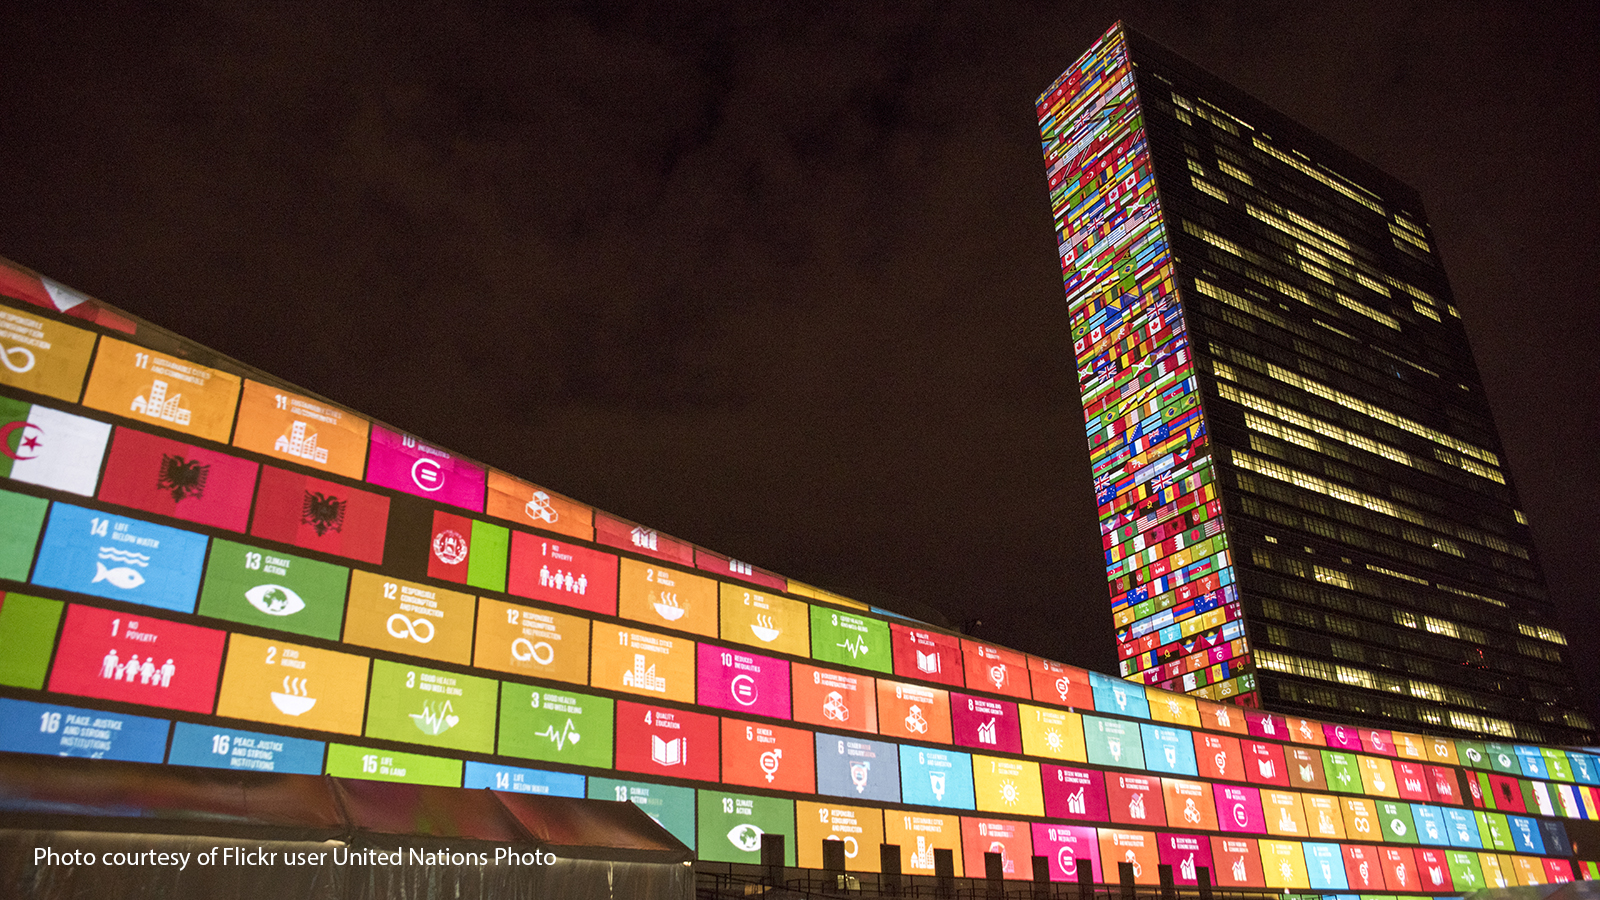 United Nations headquarters in New York lit up by pictures of the sustainable development goals.